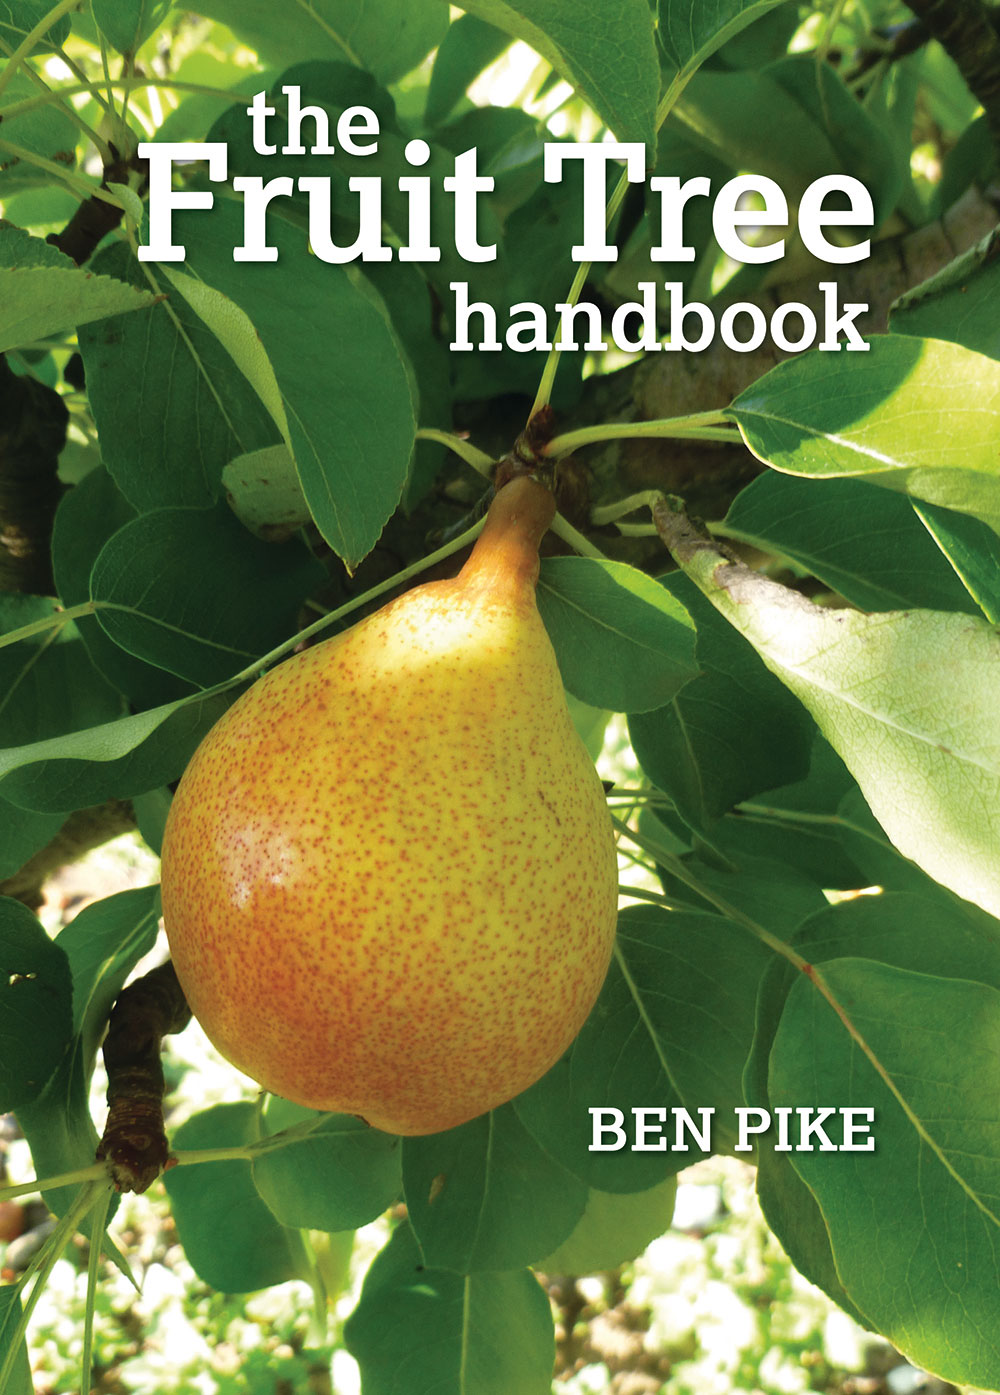 Green Books - Fruit Tree Handbook